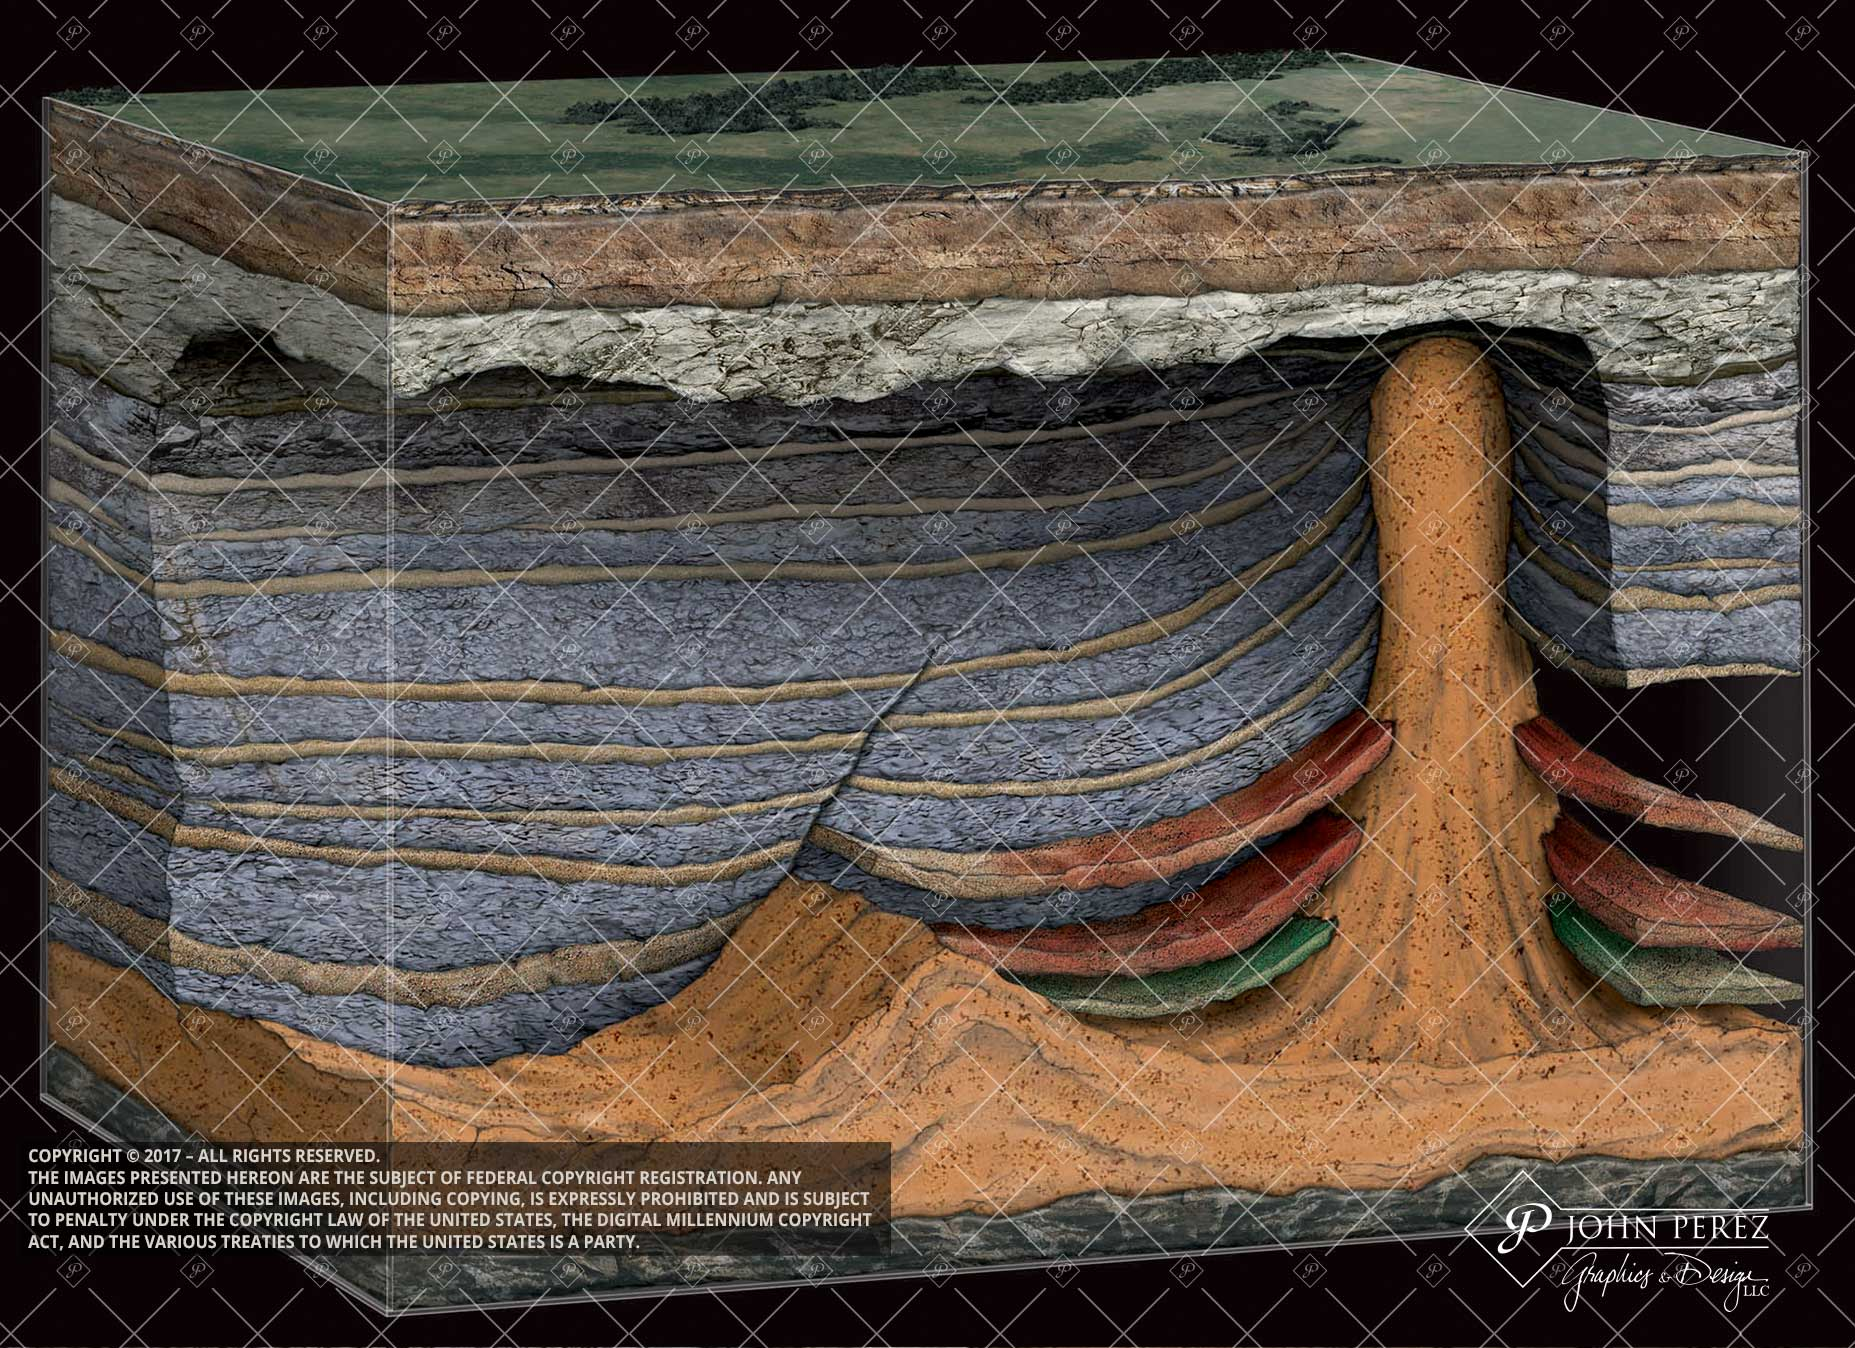 Pay Zones Stacked Against Salt Ridge with Dome, john perez graphics, salt dome, oil gas illustration, oil gas schematic